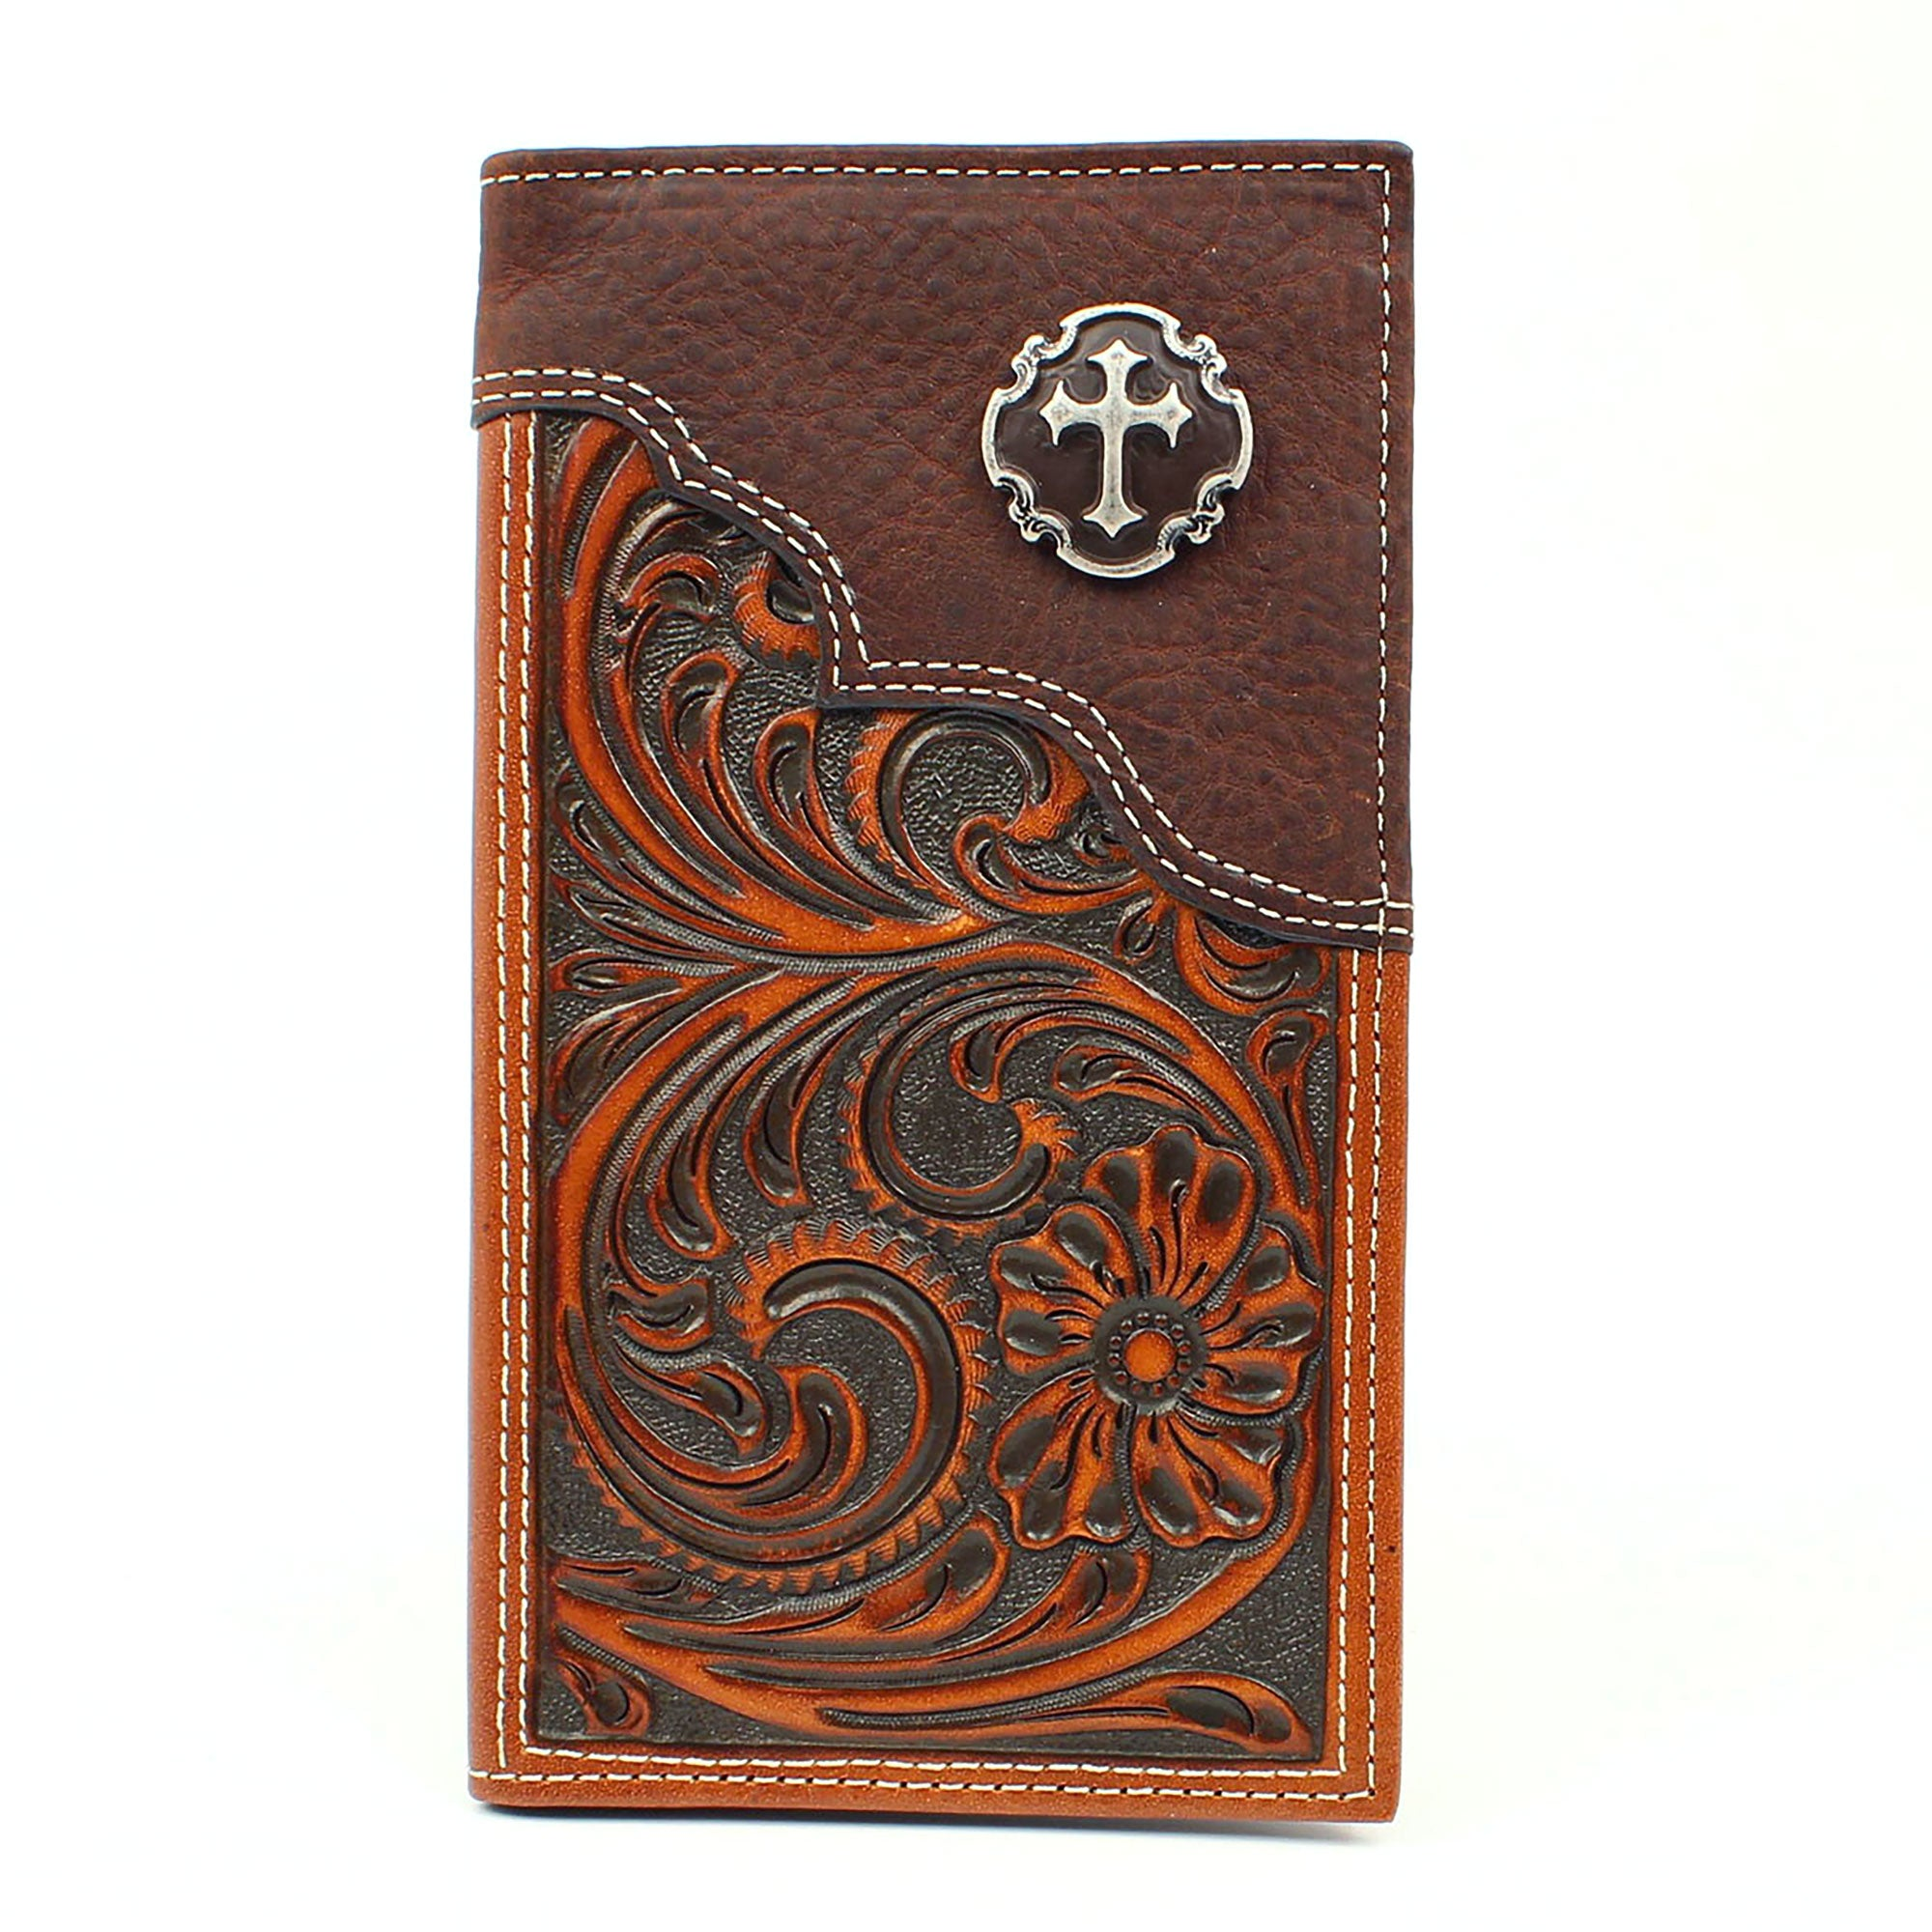 Nocona Floral Embossed Cross Concho Tan Leather Rodeo Wallet